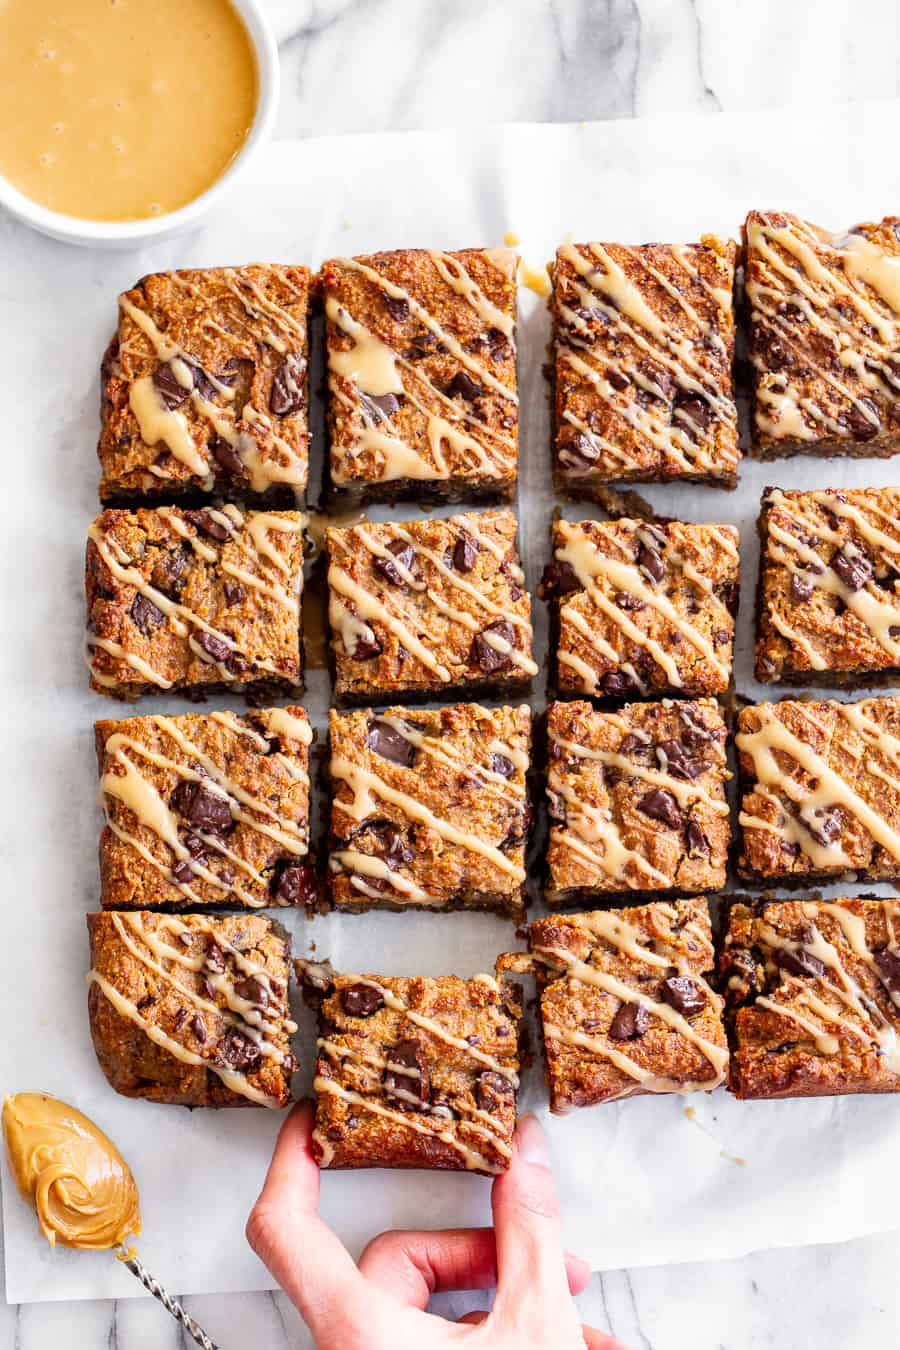 These one-bowl almond butter banana bread bars are a simple and totally delicious treat to make any time! Great for snacks and dessert, they're packed with good fats, banana flavor and dark chocolate. Top them with an almond butter icing to take them to the next level! Vegan, paleo, refined sugar free, egg free. #vegan #paleo #glutenfree